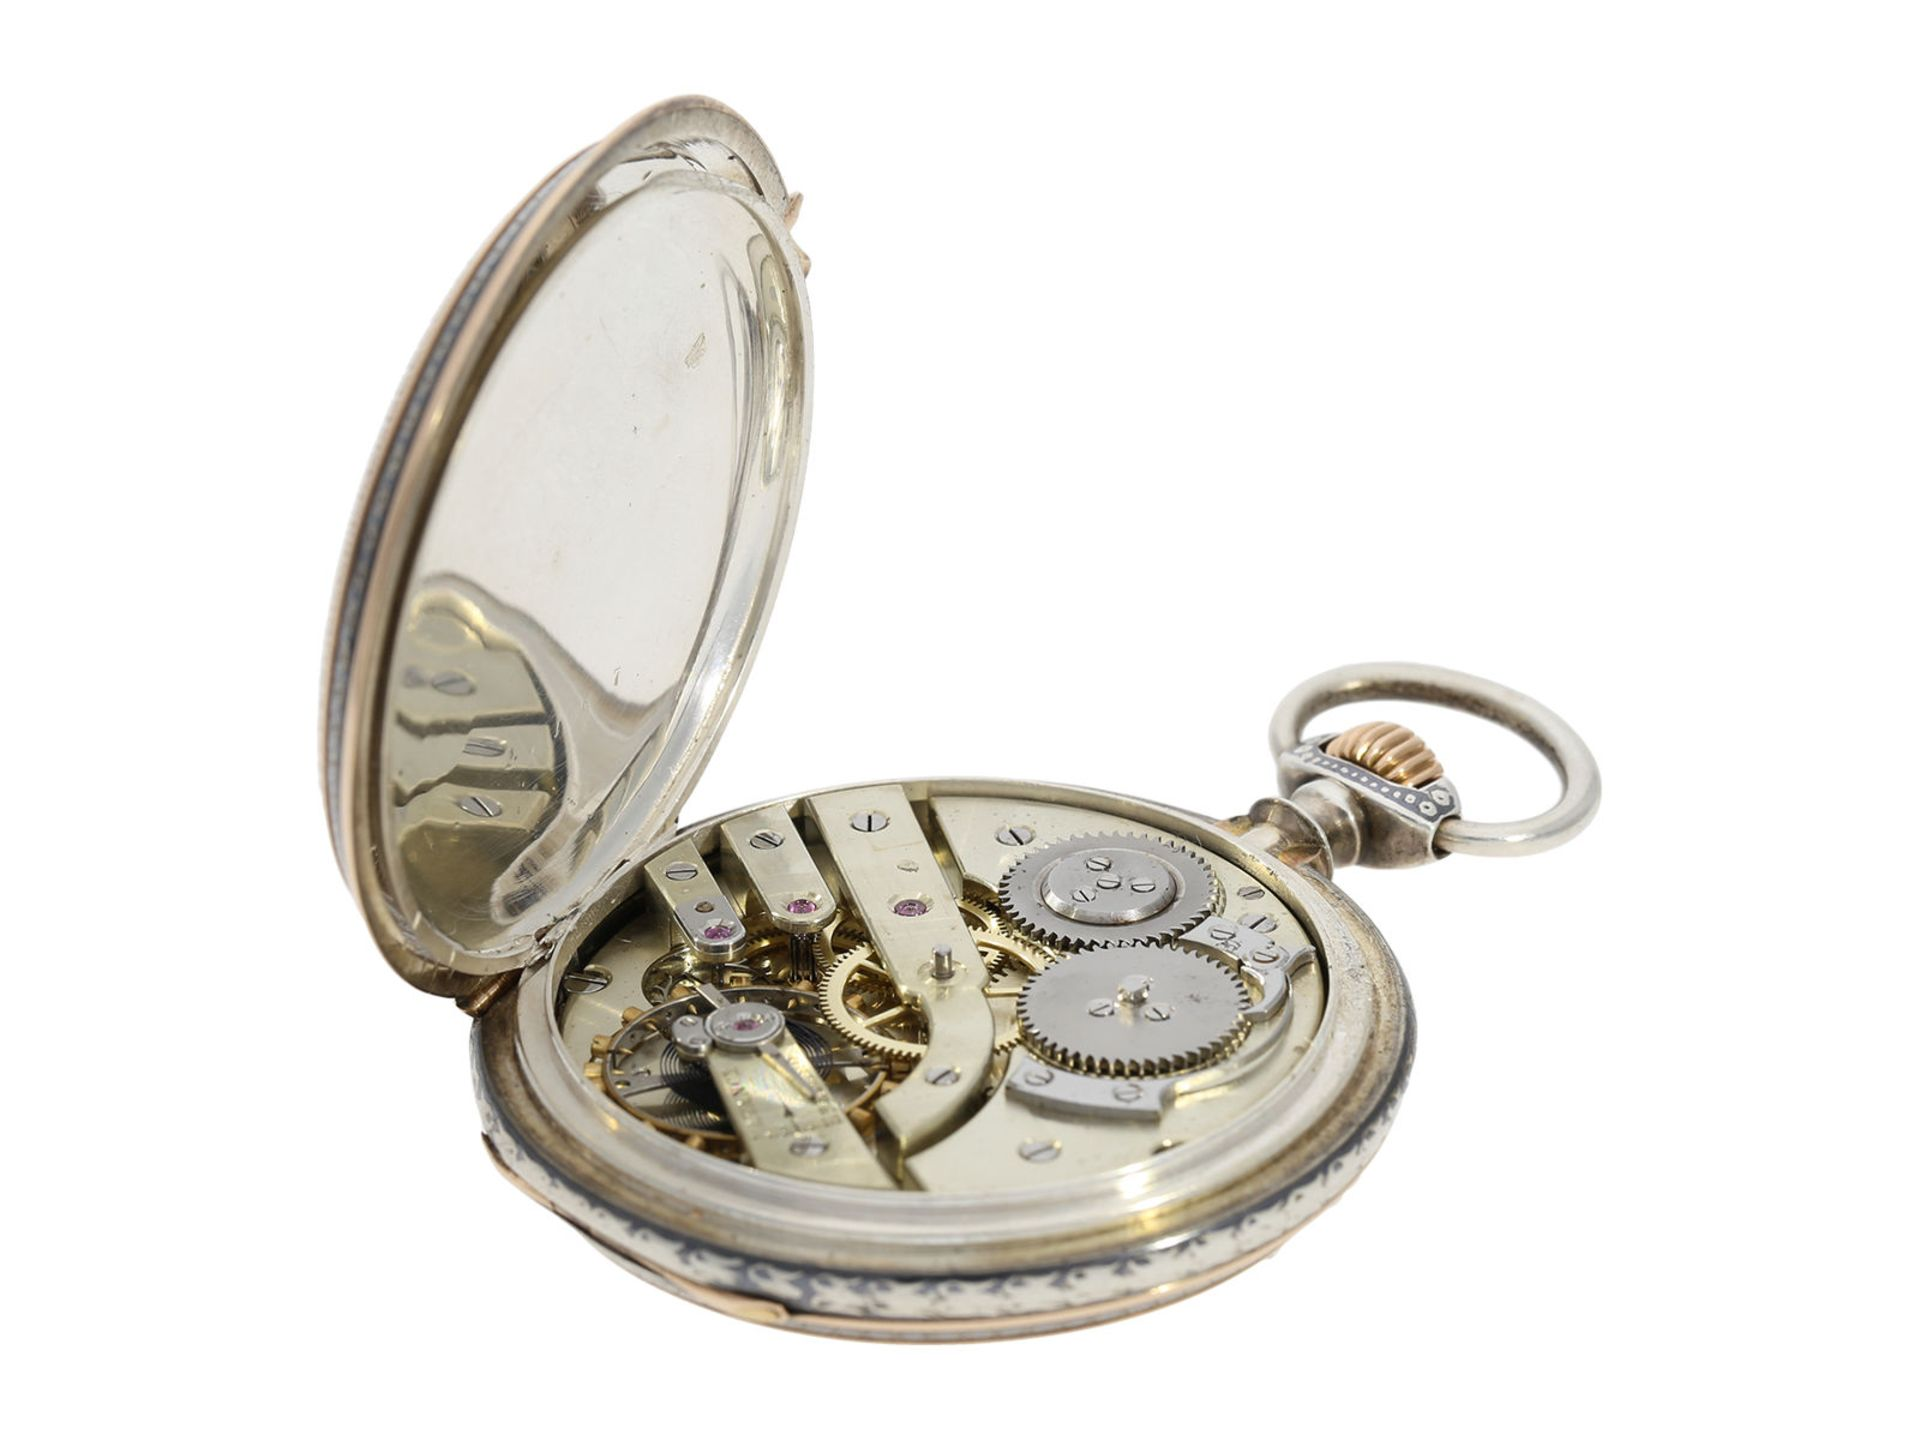 Pocket watch: extremely splendid Tula hunting case watch pink gold/ silver, high quality - Bild 4 aus 7